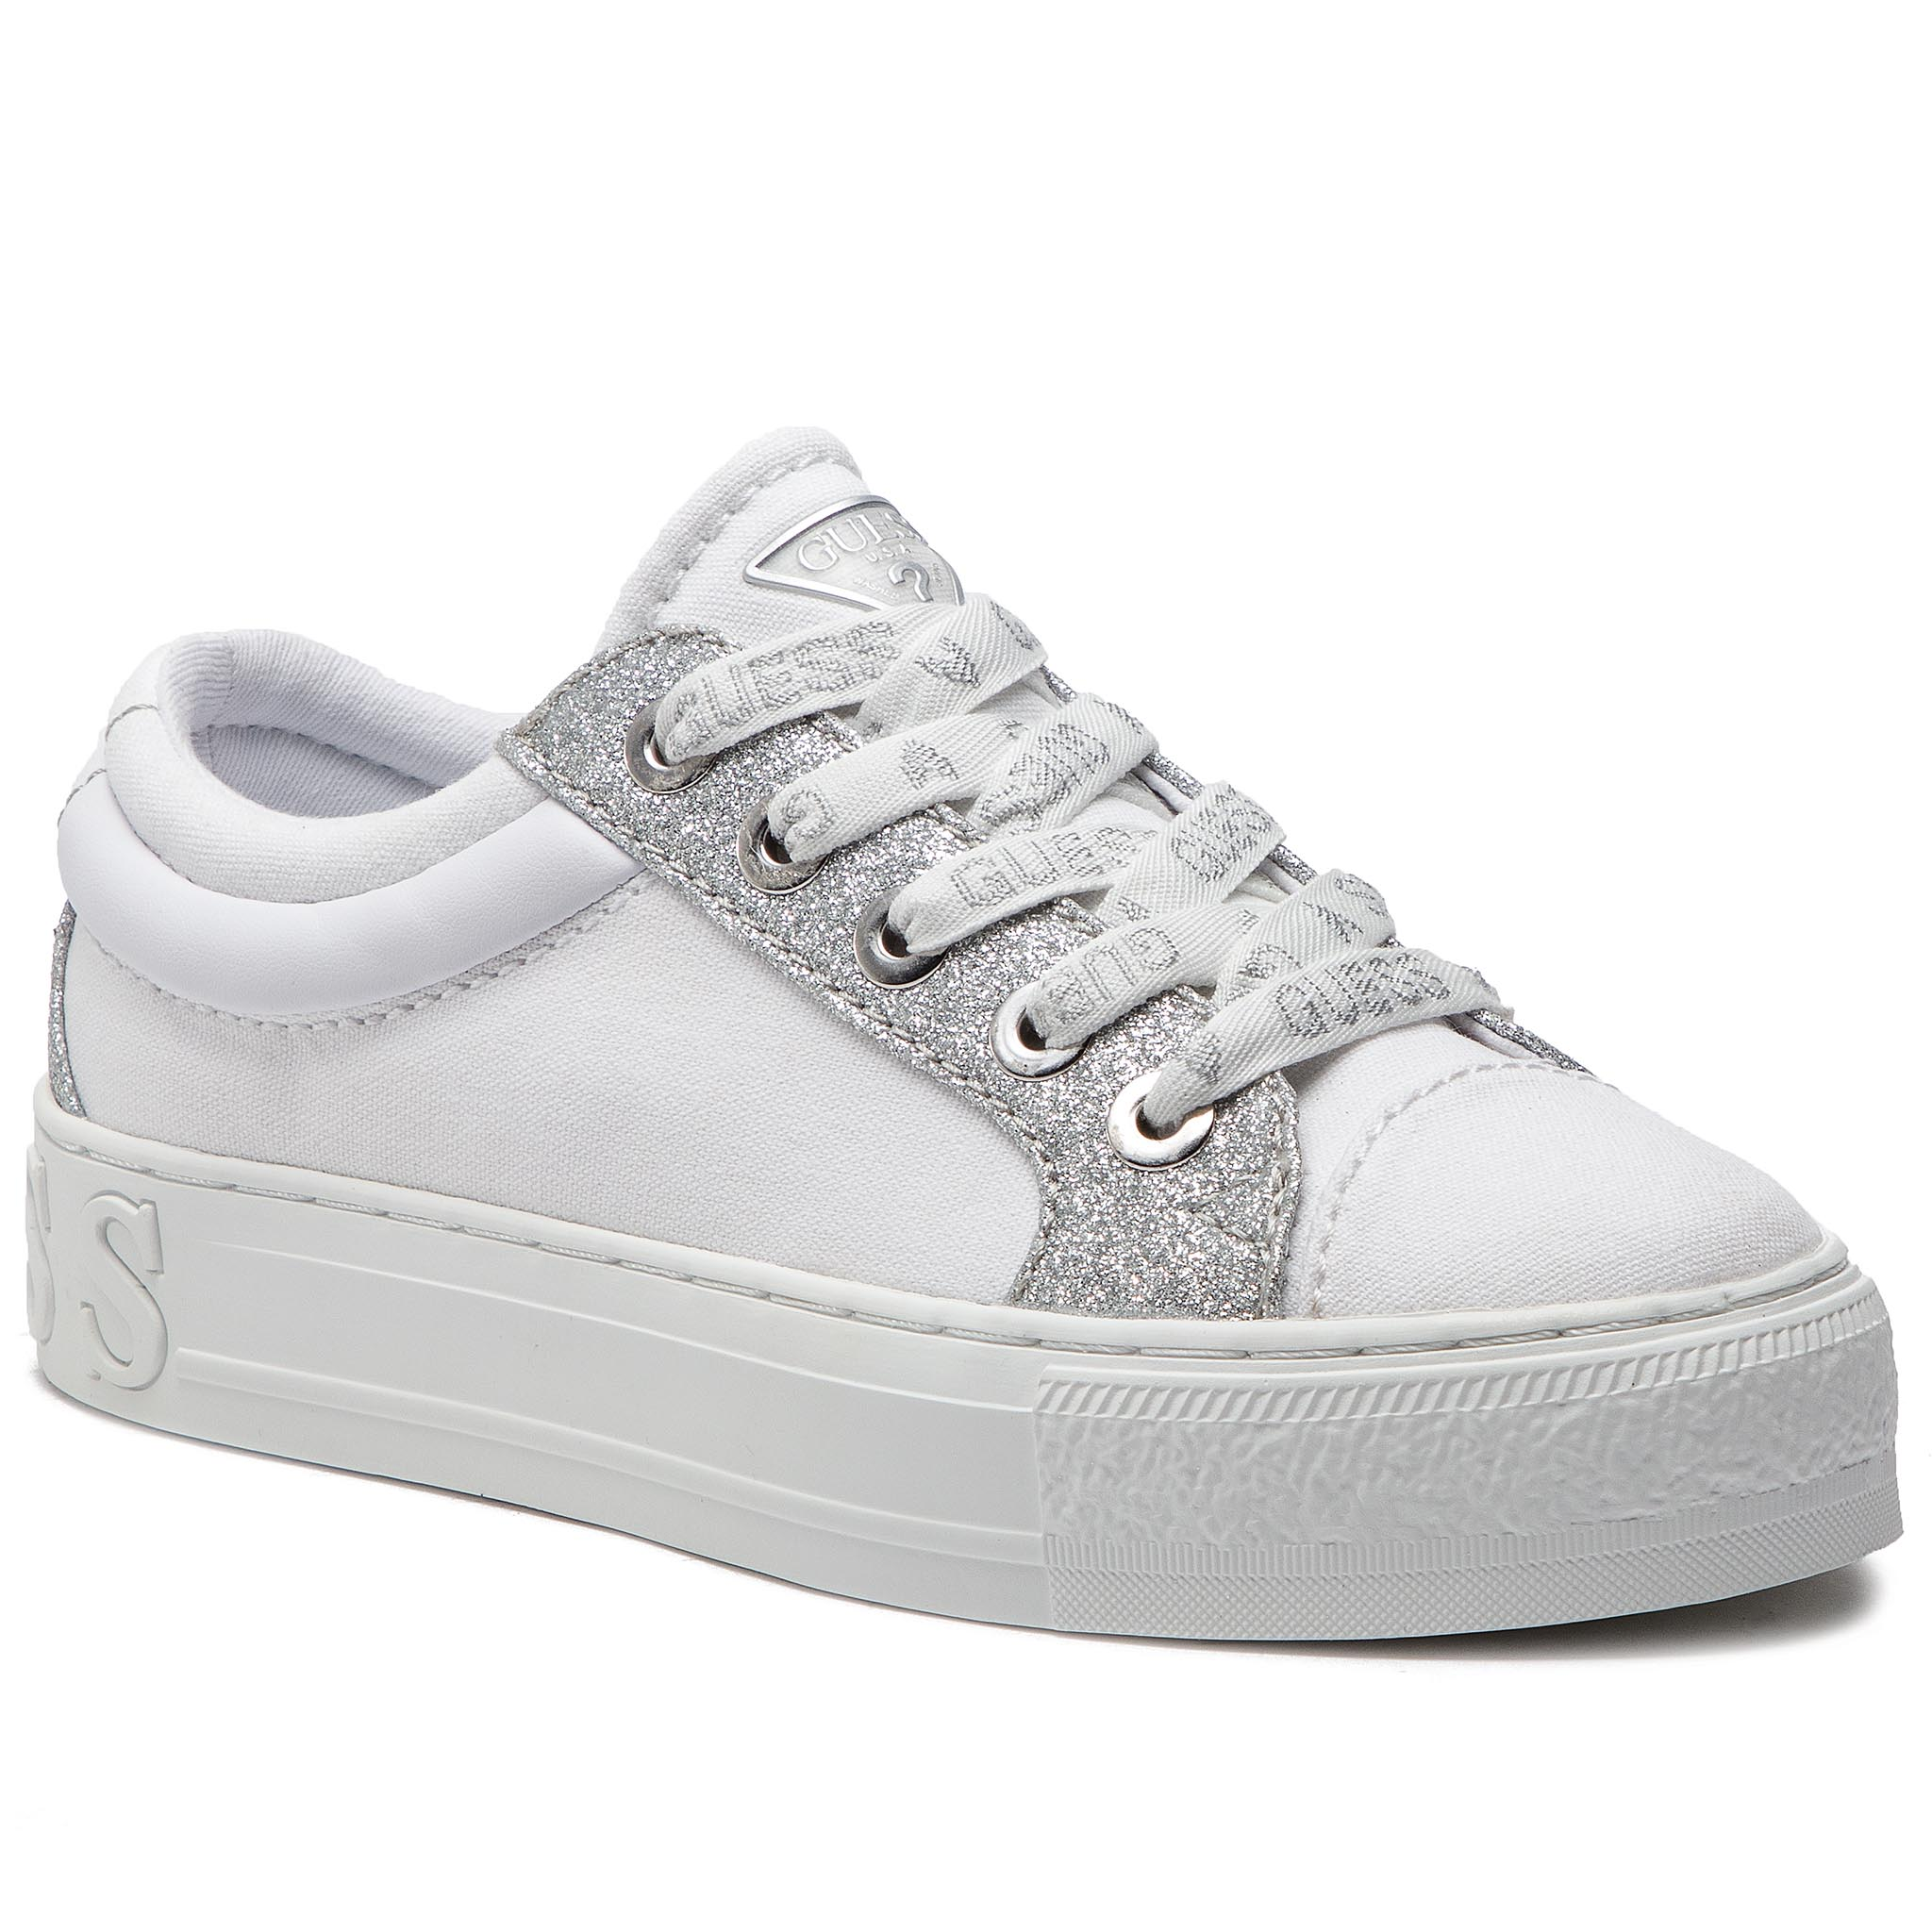 d6de0c6b665f0 Sneakersy GUESS - FL5LY5 FAB12 WHITE - Glami.sk